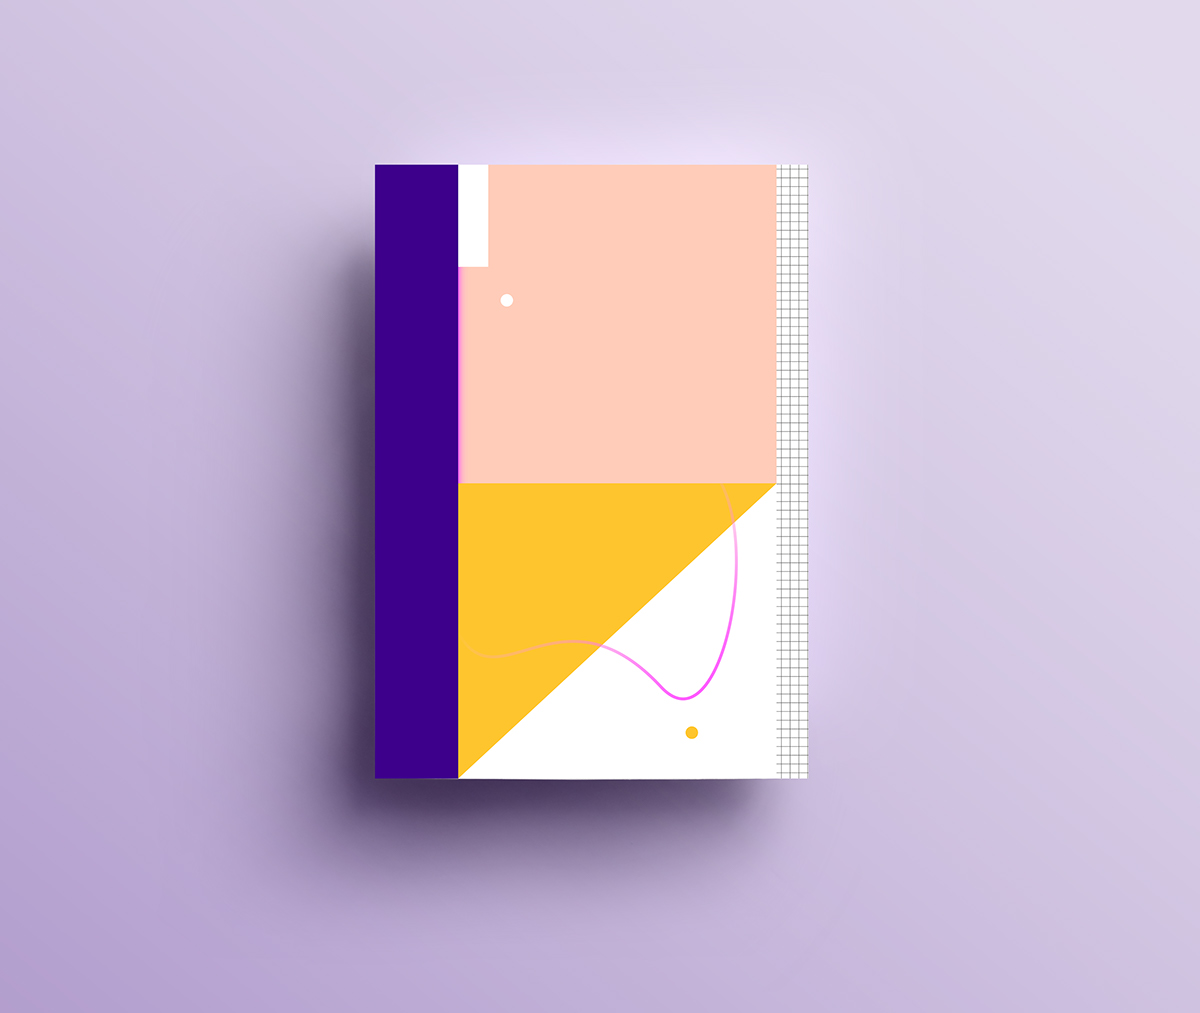 geometry milano poster color minimal pastel Day GEO geometric pattern texture line Manifest clear Event